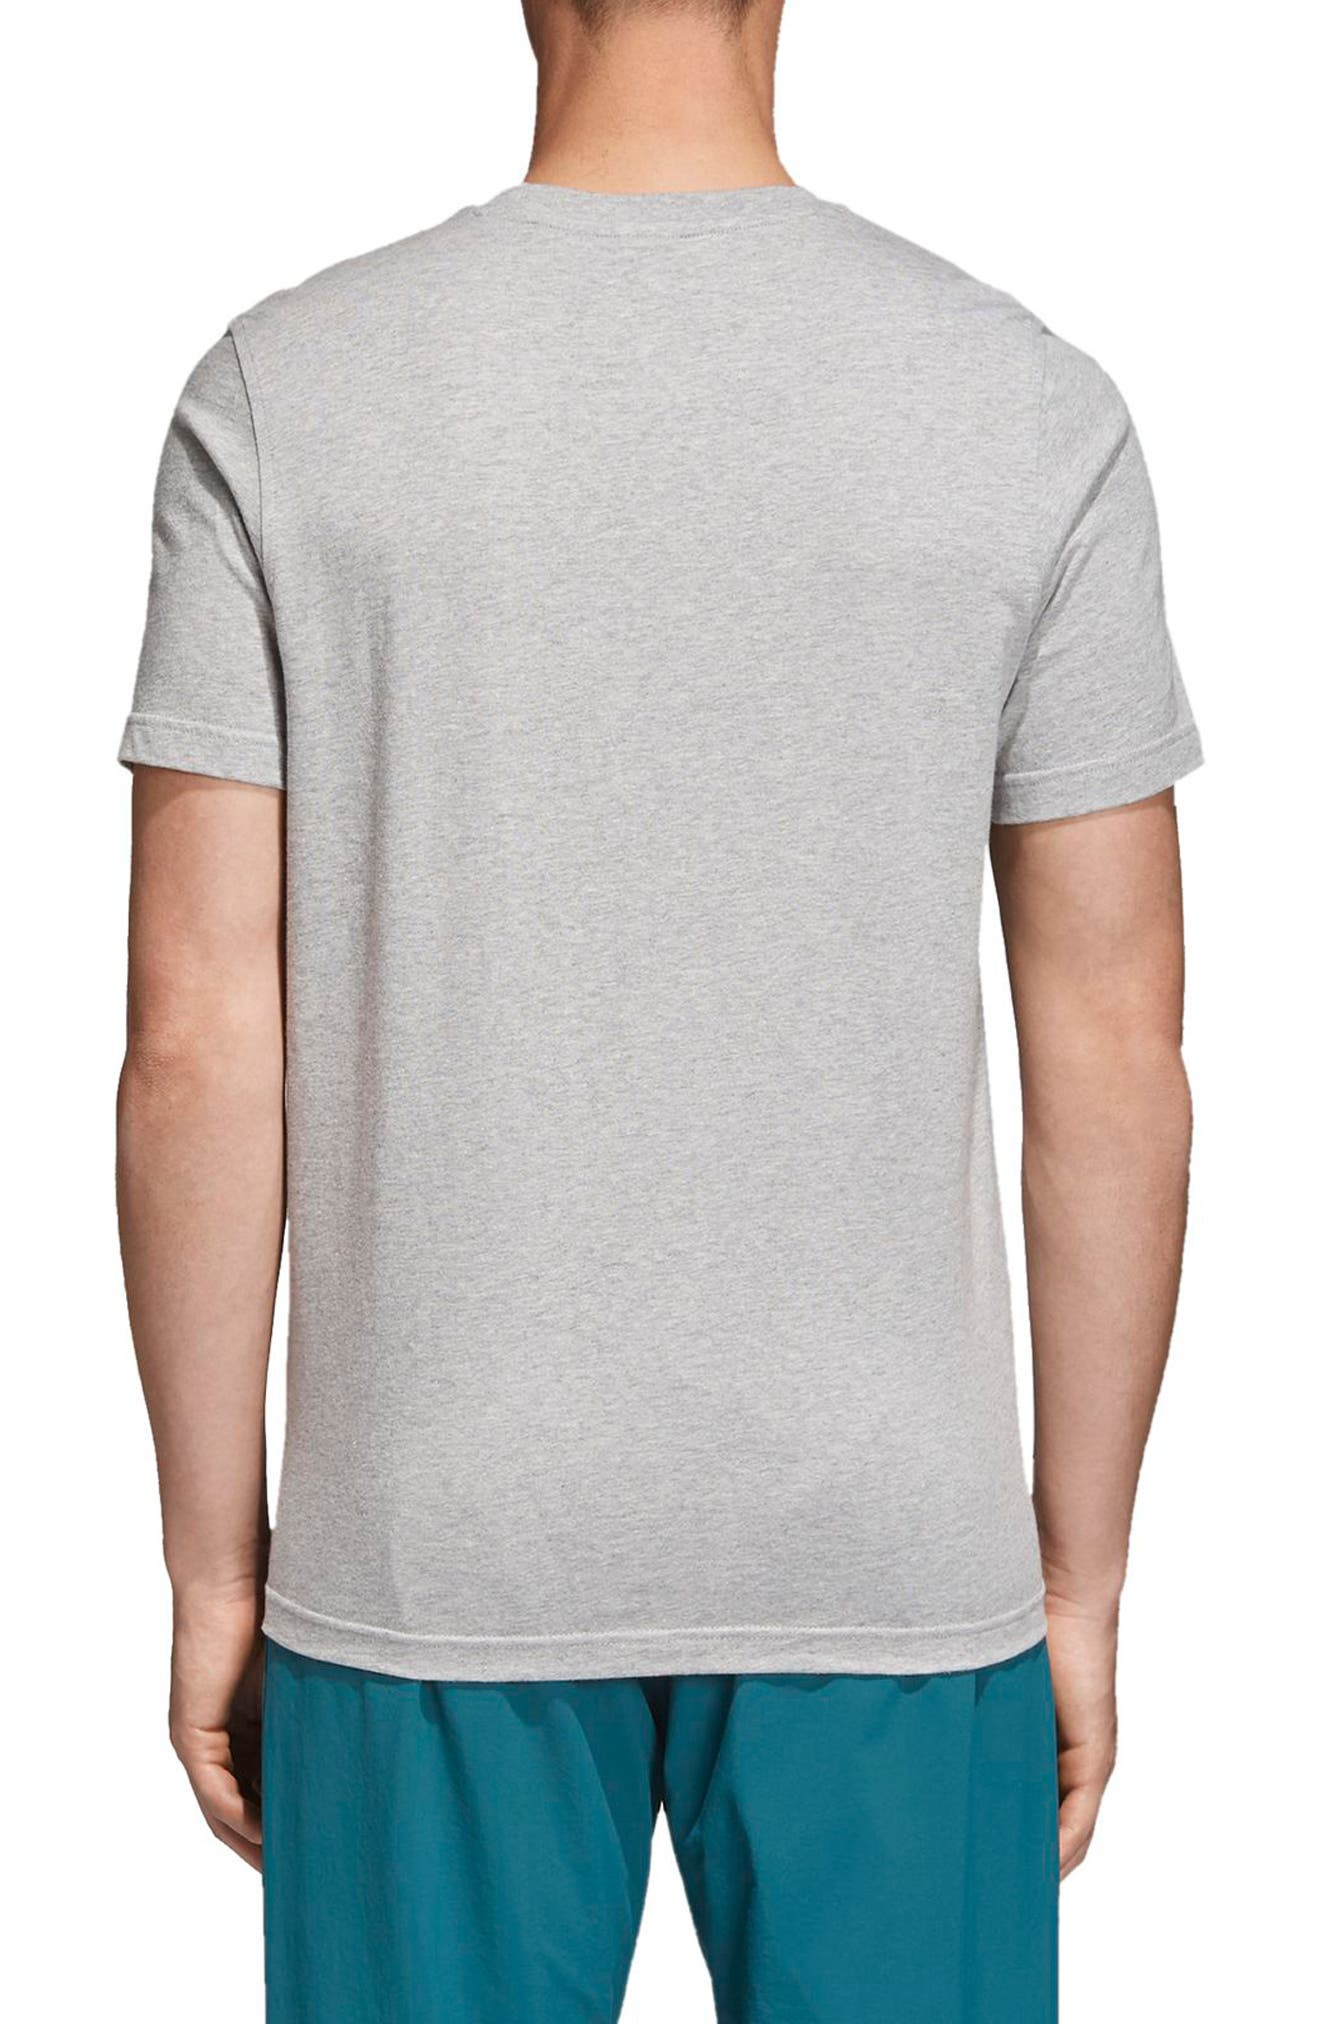 Trefoil T-Shirt,                             Alternate thumbnail 2, color,                             MEDIUM GREY HEATHER